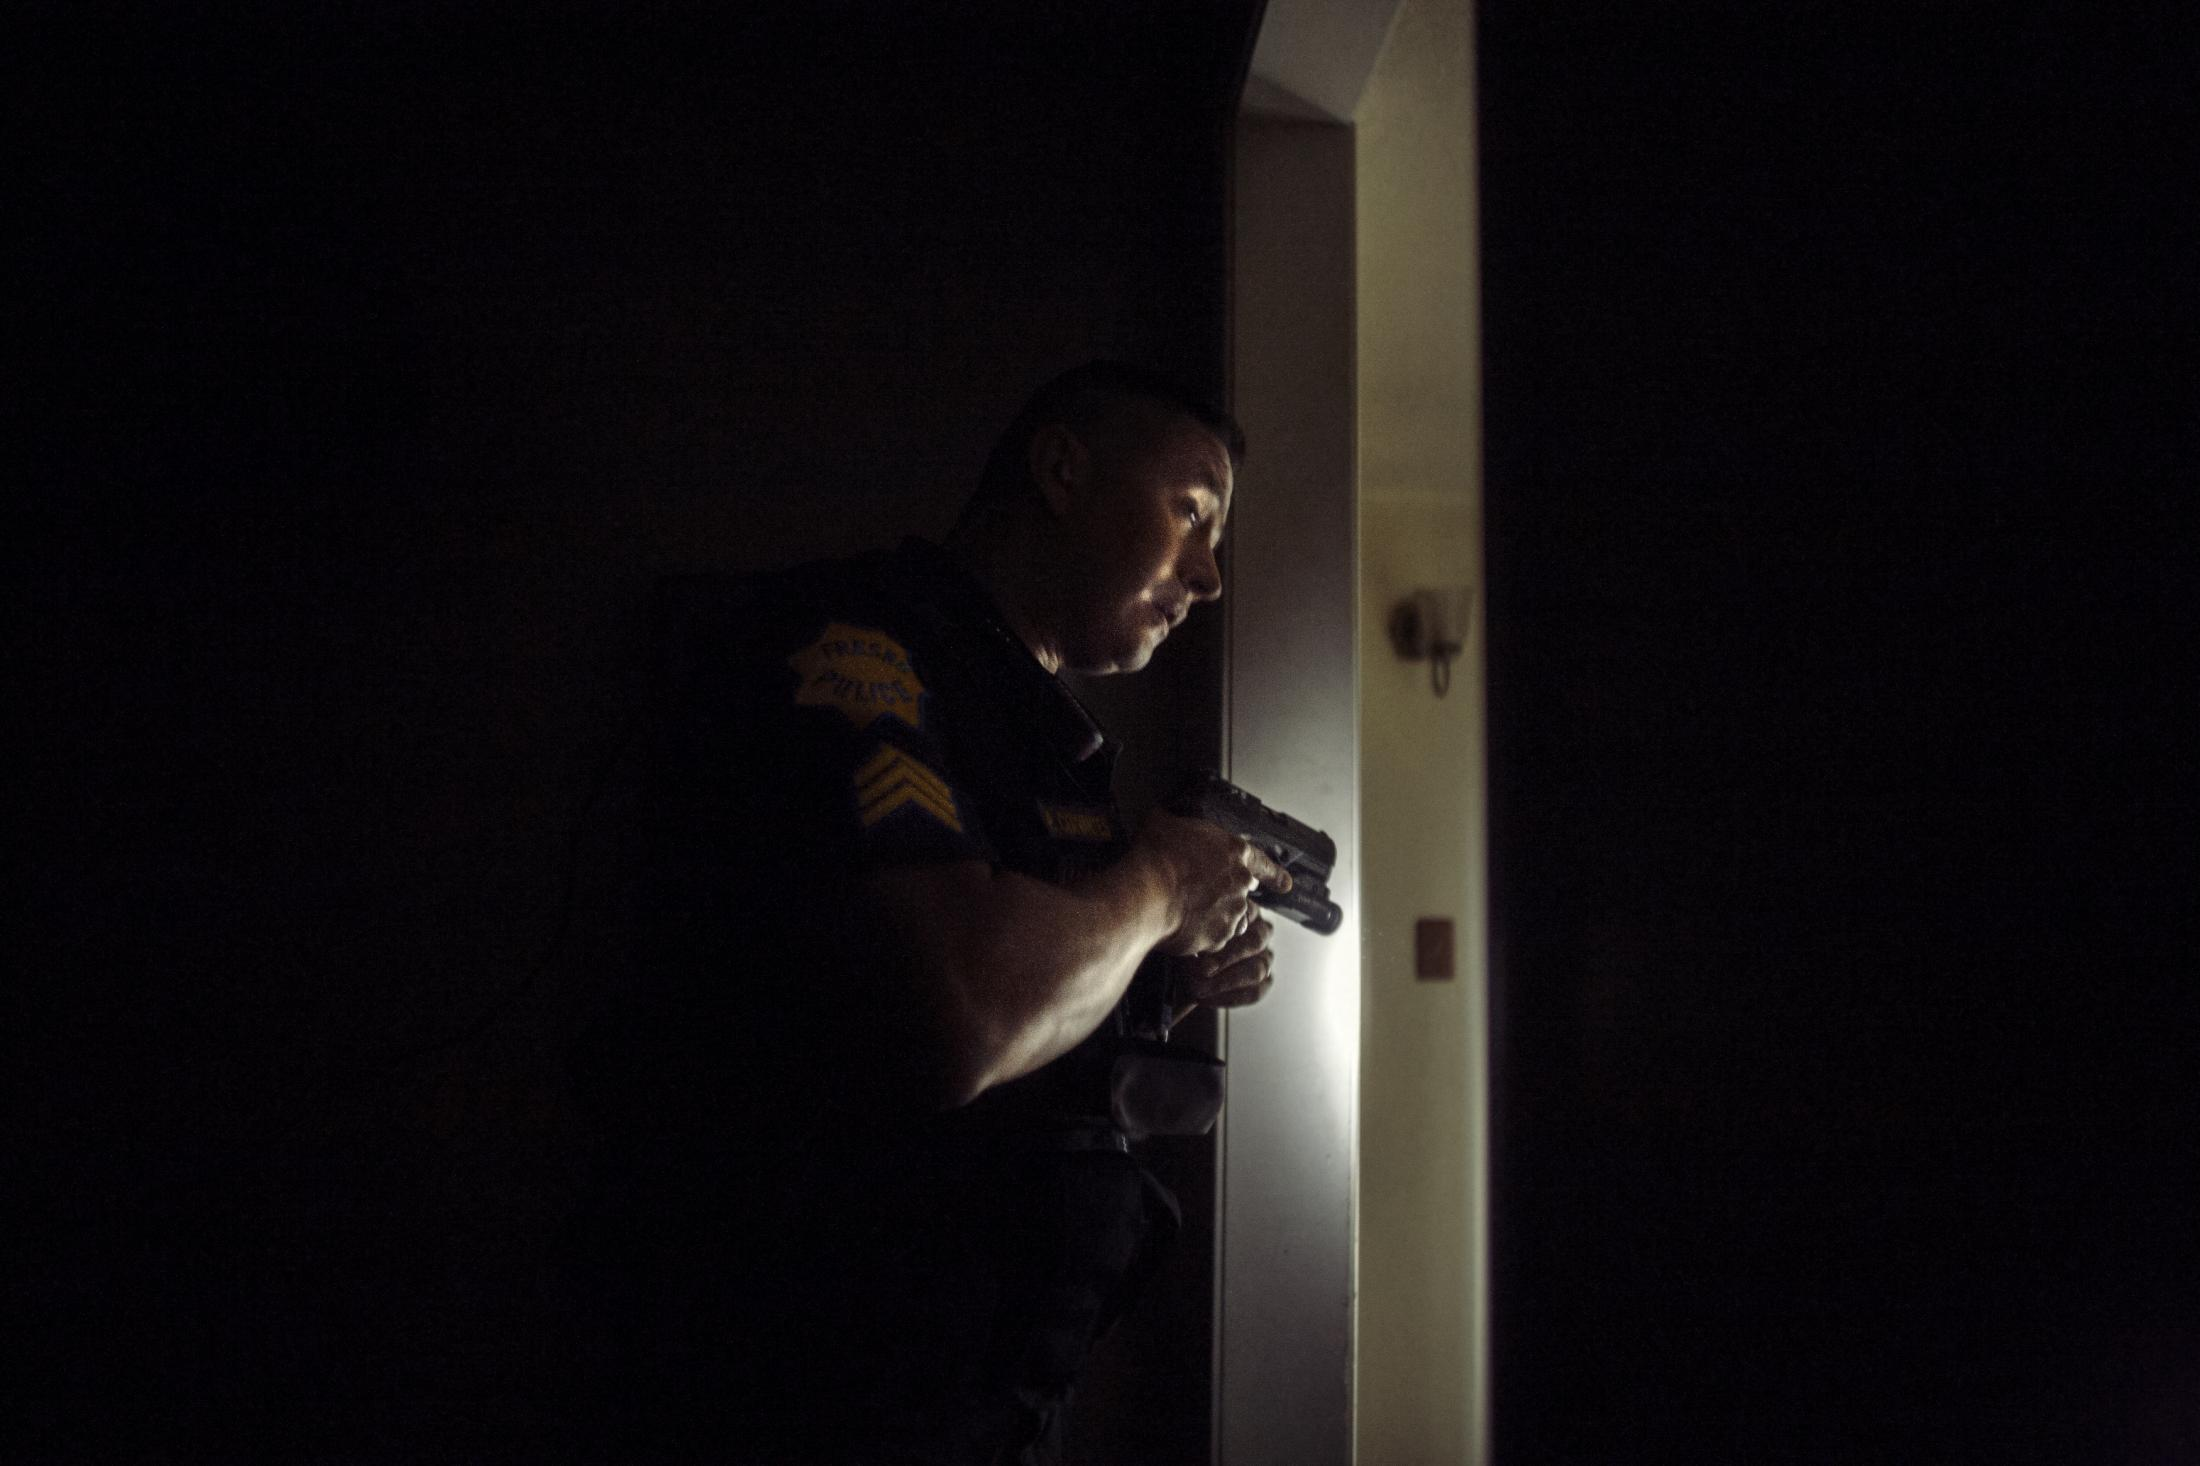 Fresno Police Sergeant Paul Cervantes of the Multi Agency Gang Enforcement Consortium (MAGEC) conducts a security sweep of a home in Fresno, CA. Cervantes was later charged with corruption and removed as head of the task force in a scandal that would lead to a shakeup of the Fresno Police department.